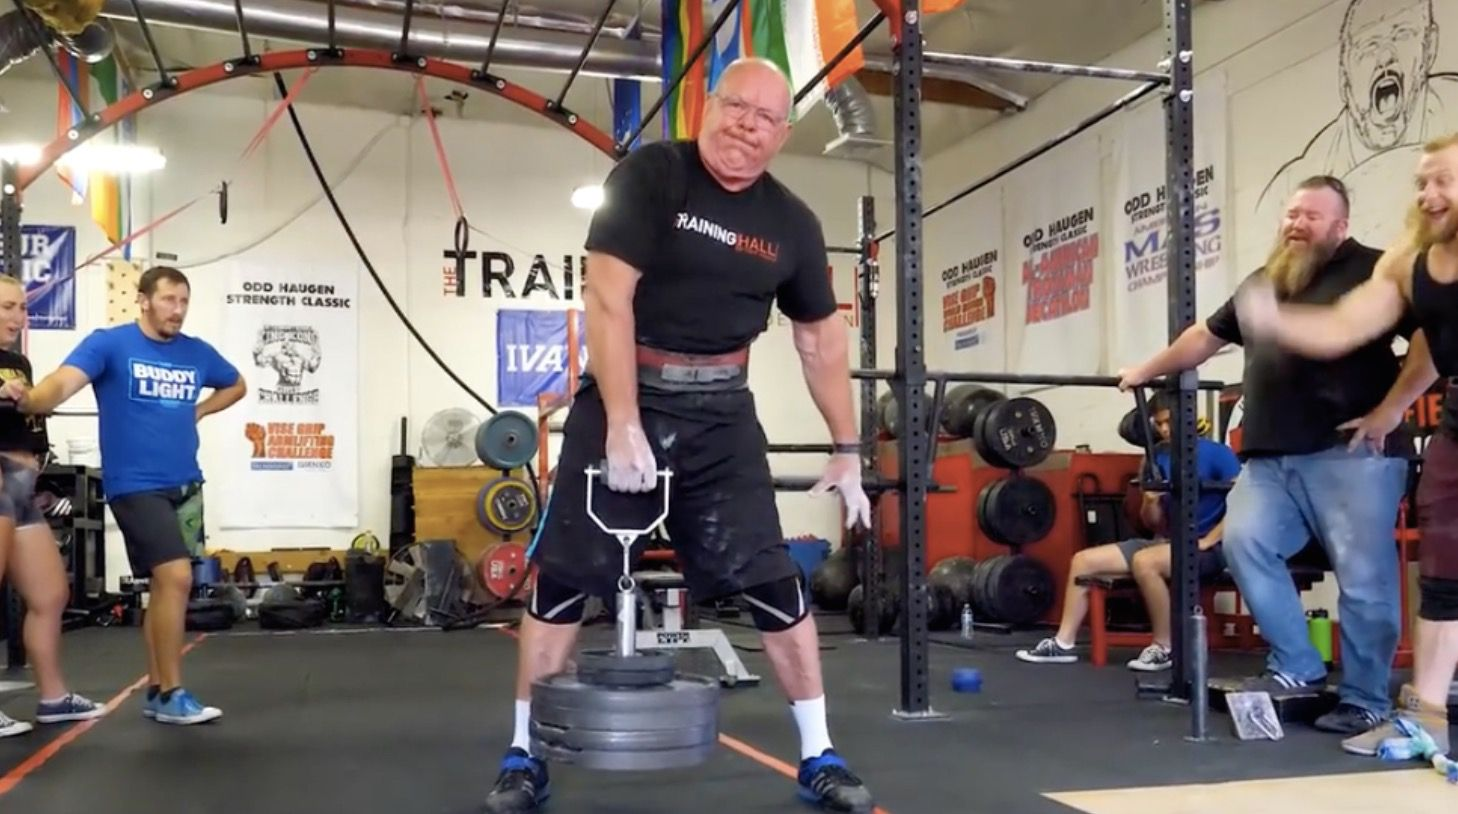 Watch This 69-Year-Old Lifter Show Off His Amazing Grip Strength